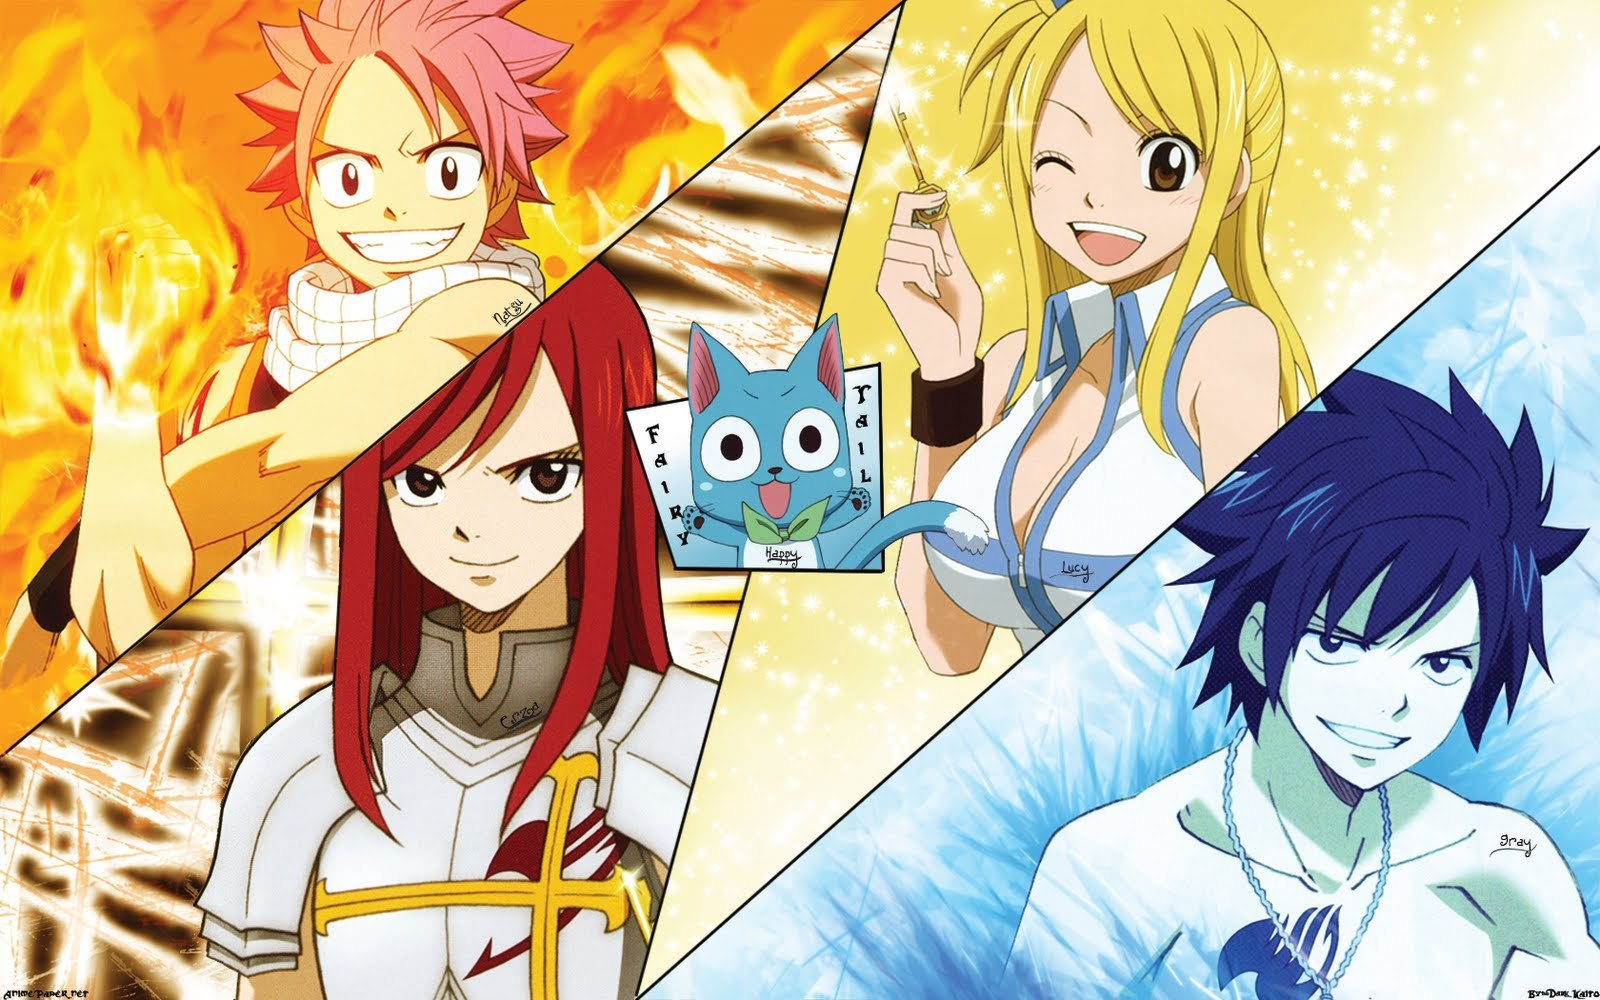 Animax Cartoon Wallpaper cool one's - animax(the complete anime) wallpaper (32536007